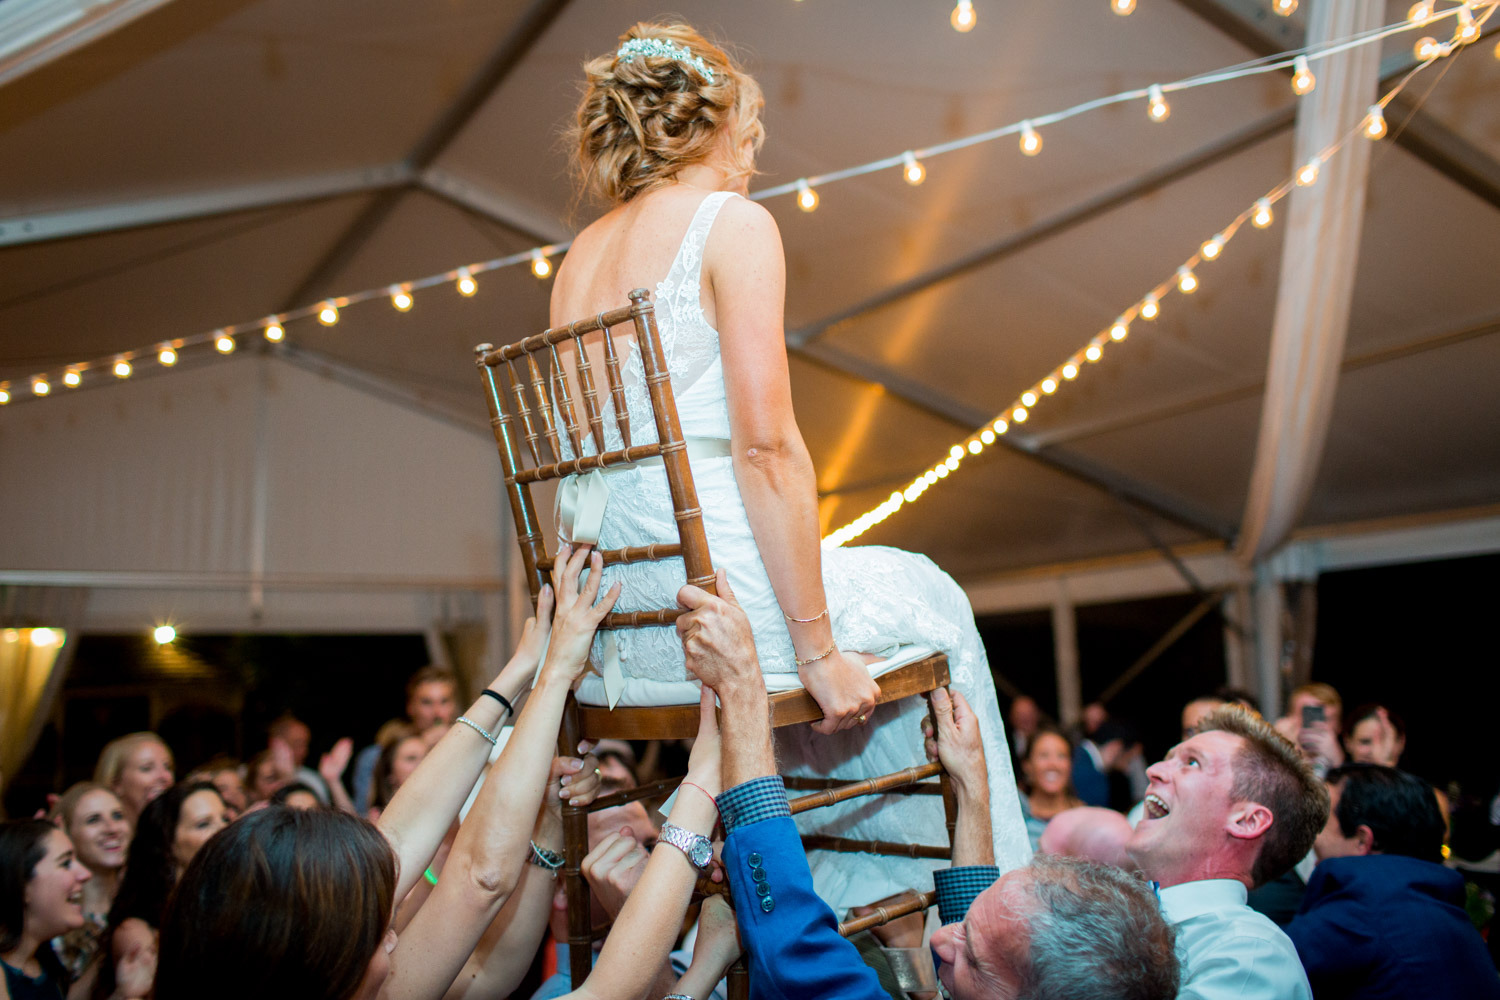 Bride and groom hora on the dance floor at Walker's Overlook, nighttime wedding photography from Cavin Elizabeth Photography